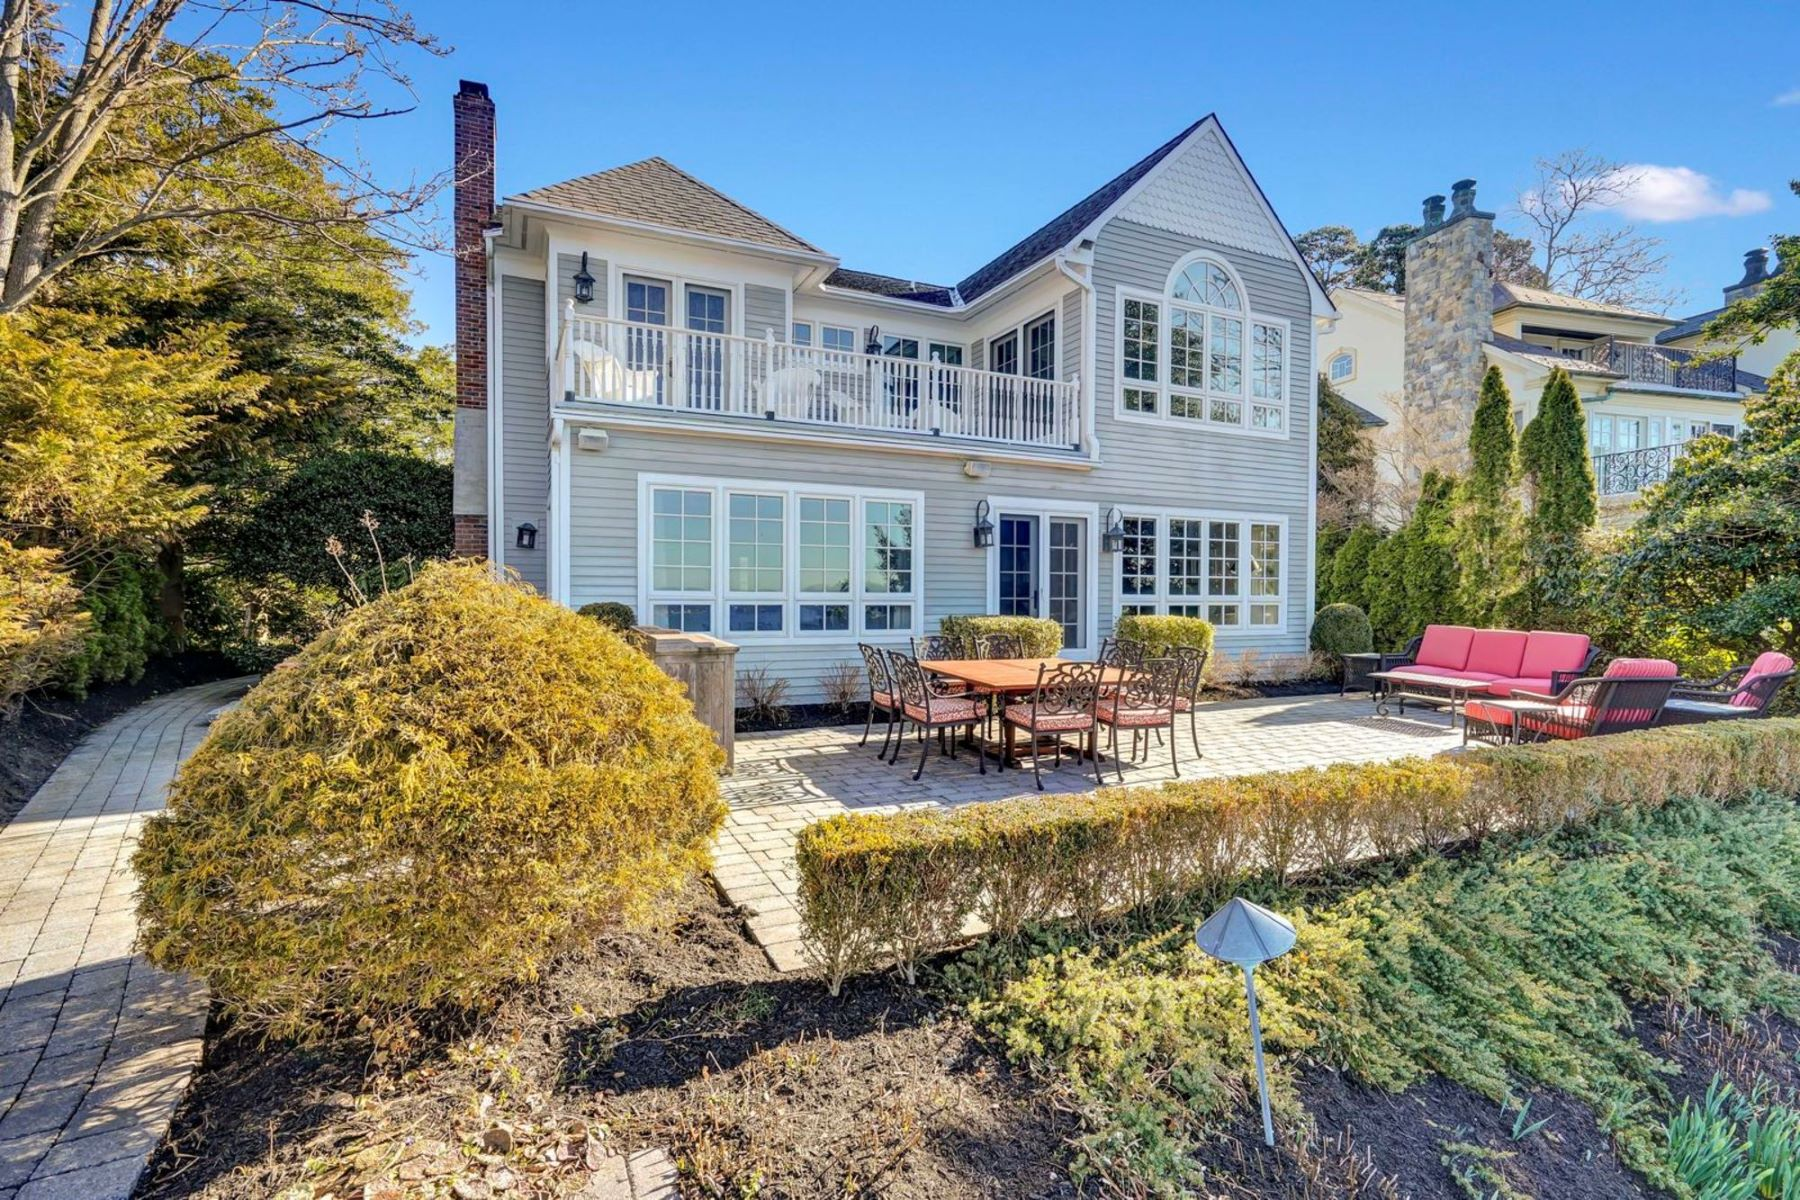 Single Family Home for Sale at Sunsets on the Manasquan River 2553 River Road, Wall, New Jersey 08732 United States